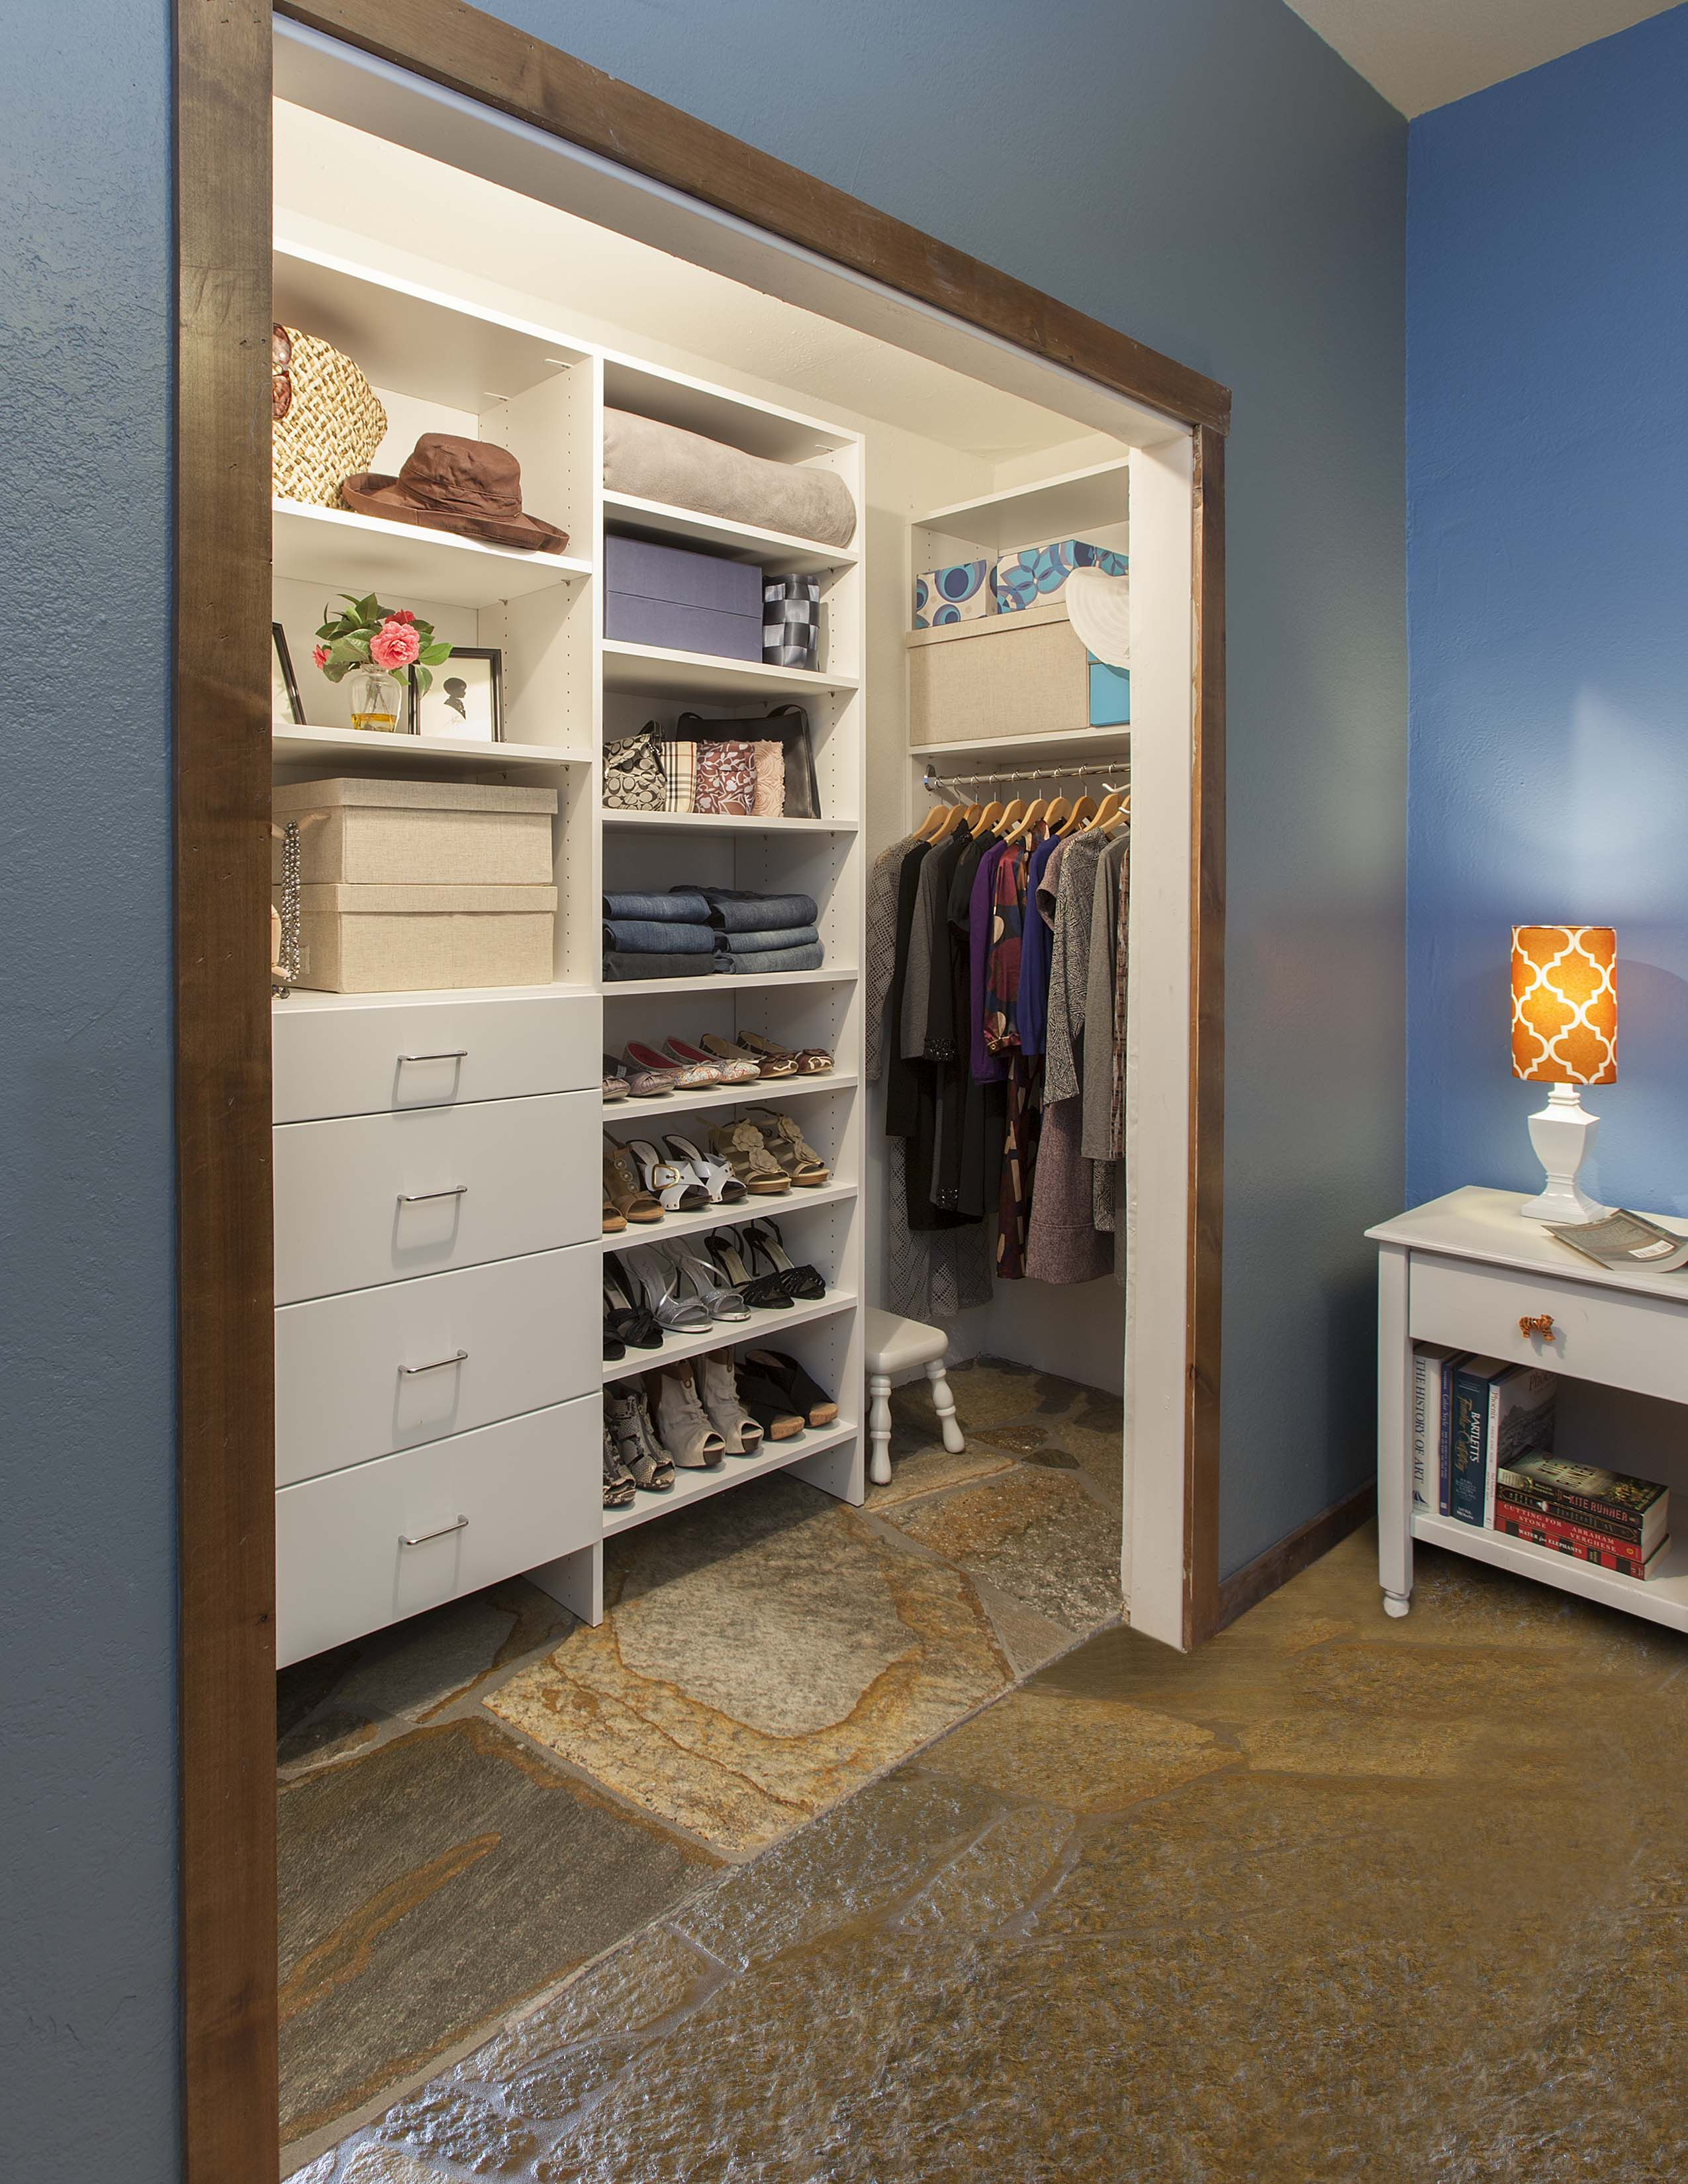 Find This Pin And More On Closets By Burlington Closet U0026 Garage  Solutions.